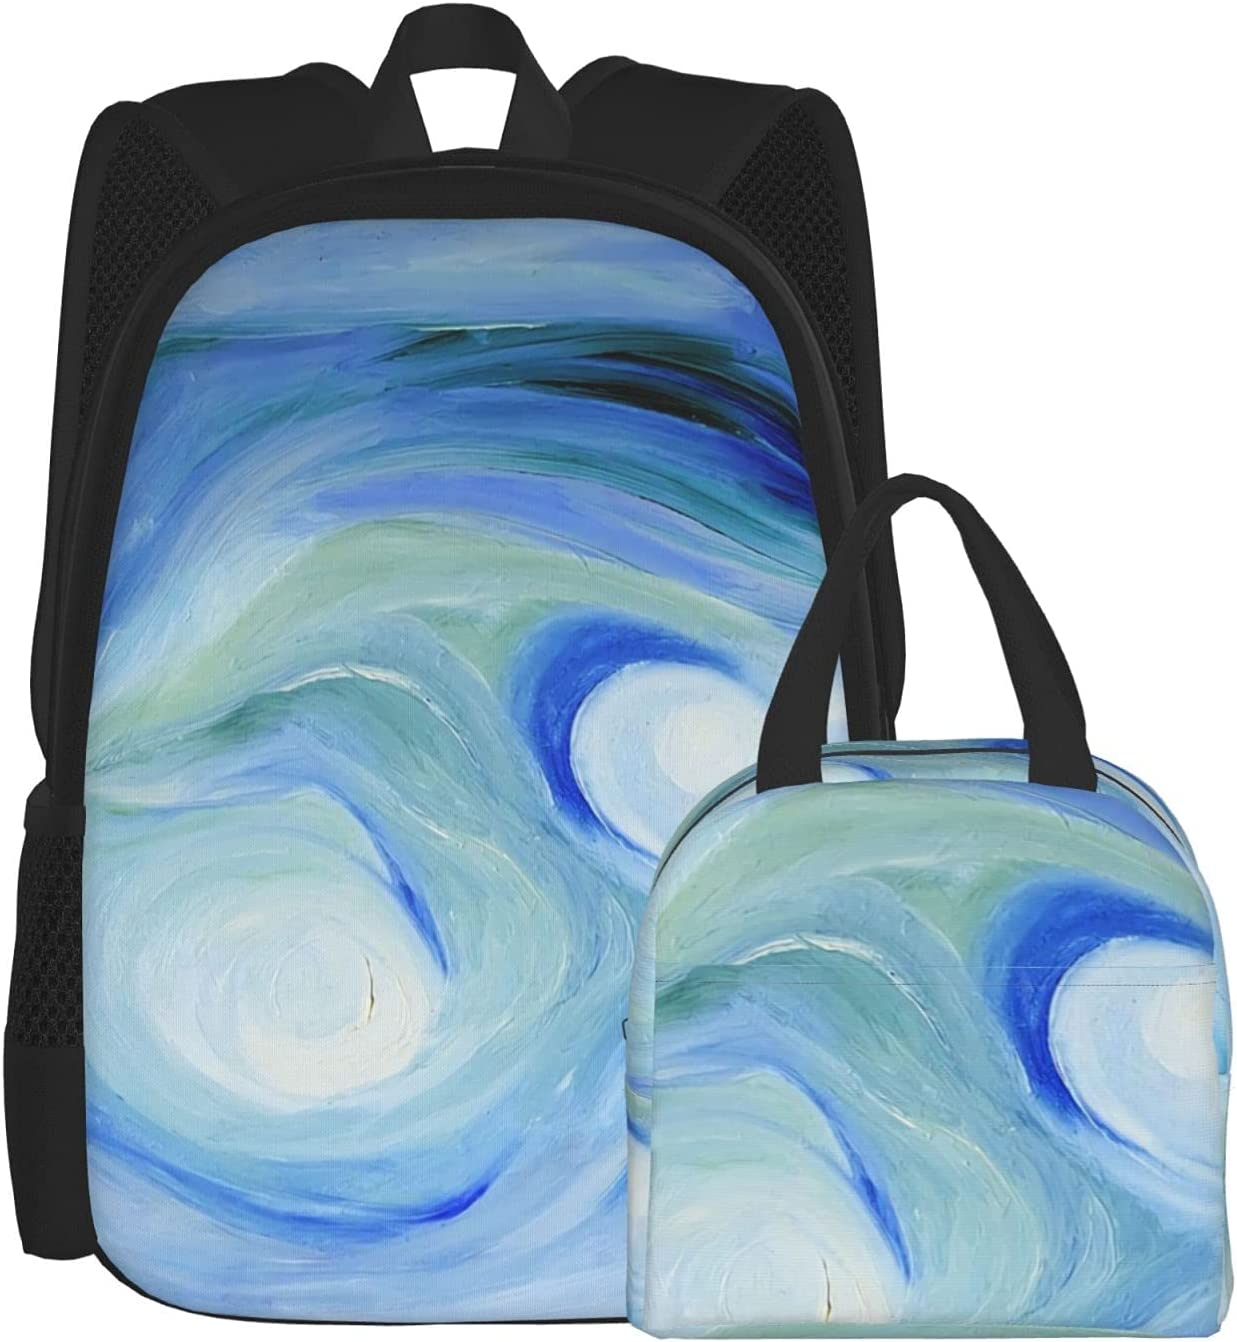 Backpack Lunch Bag Sets for Girls Watercolor Blue Boys Paintin Quality Recommendation inspection